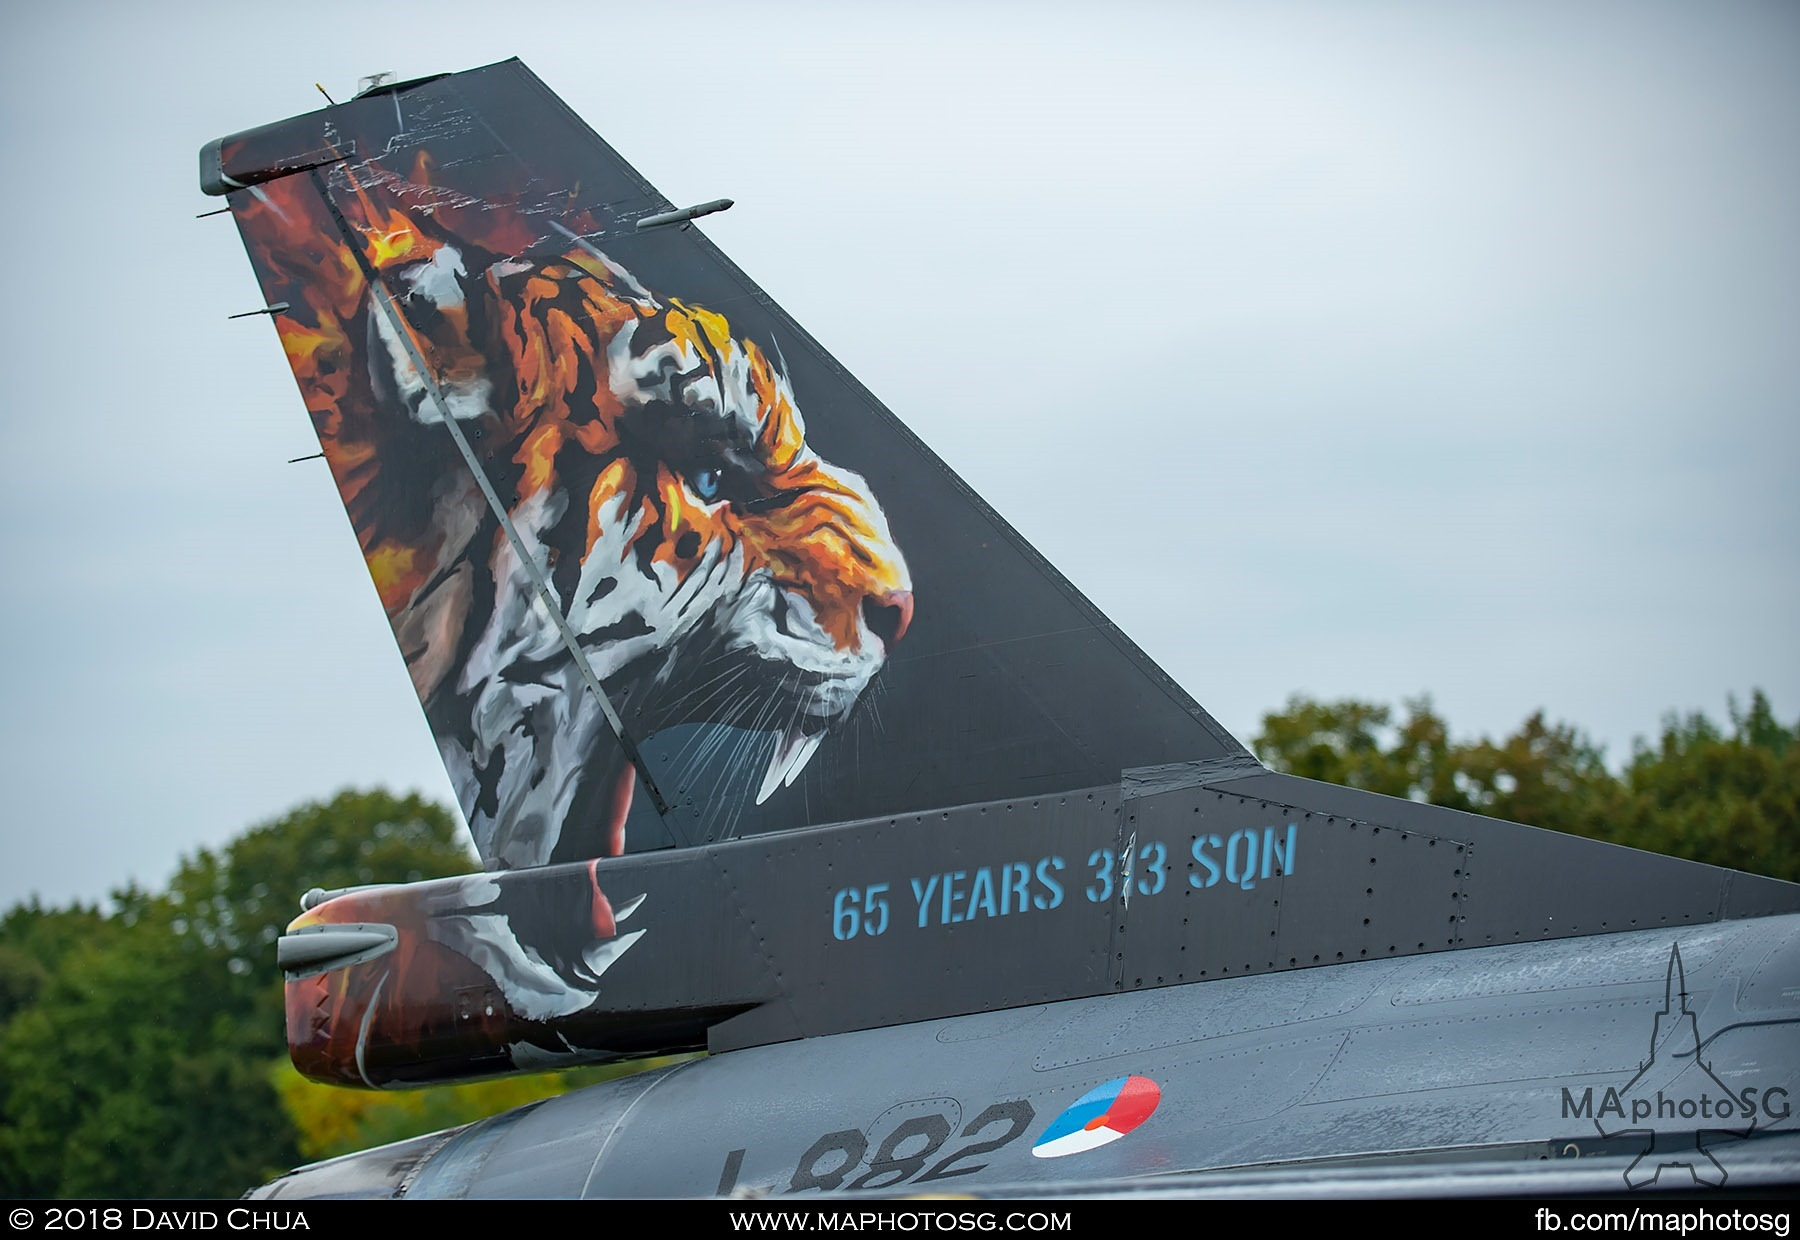 14. Tailflash of the Royal Netherlands Air Force F-16 celebrating 65 years of 313 Squadron